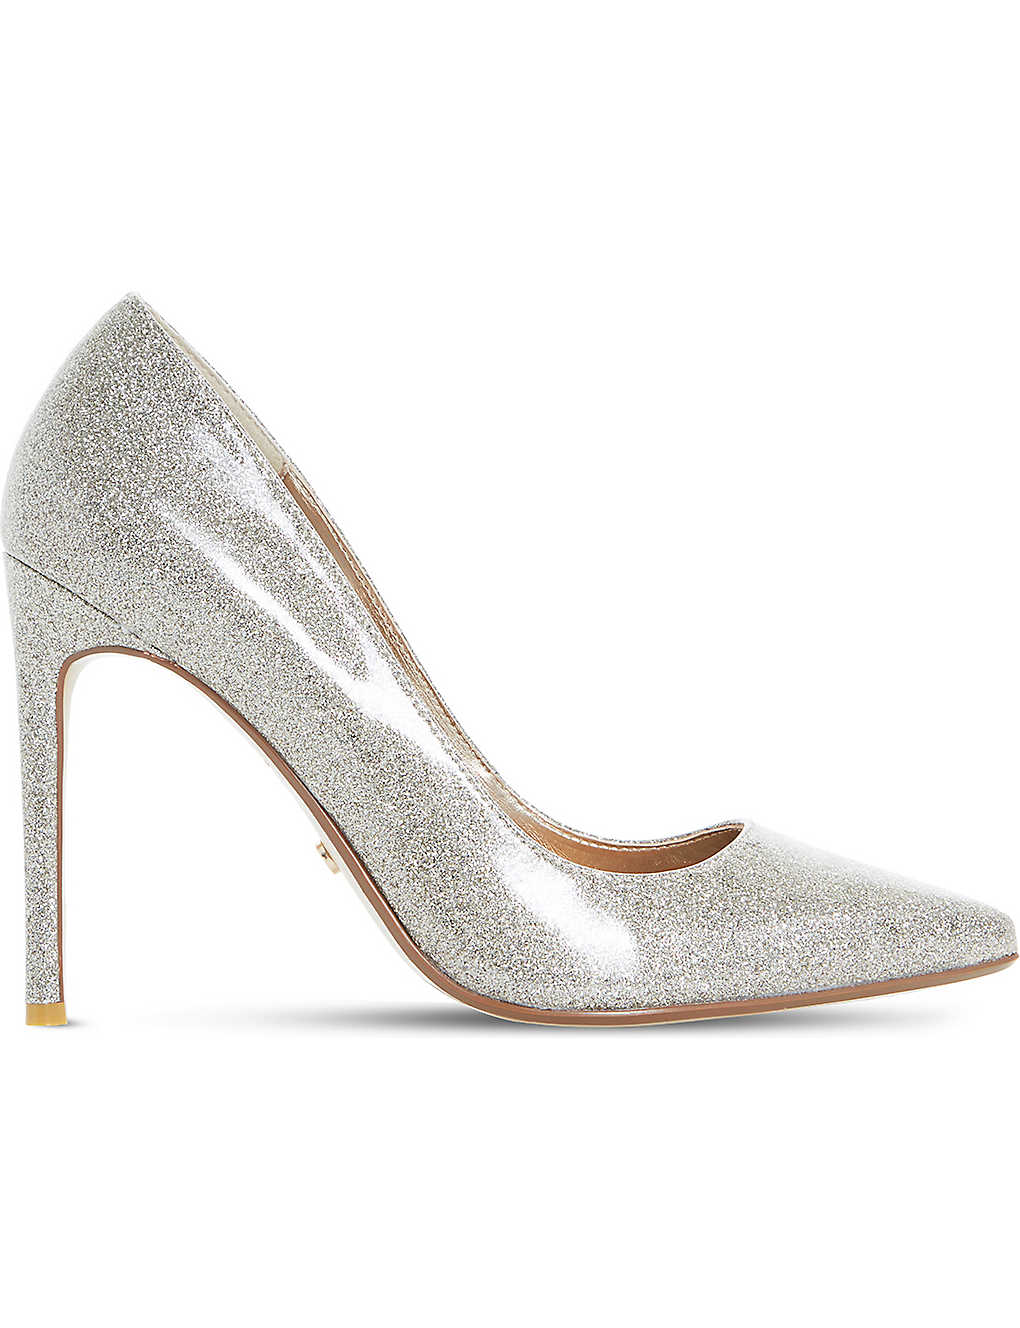 7579263168 DUNE - Amalfie glitter patent court shoes | Selfridges.com